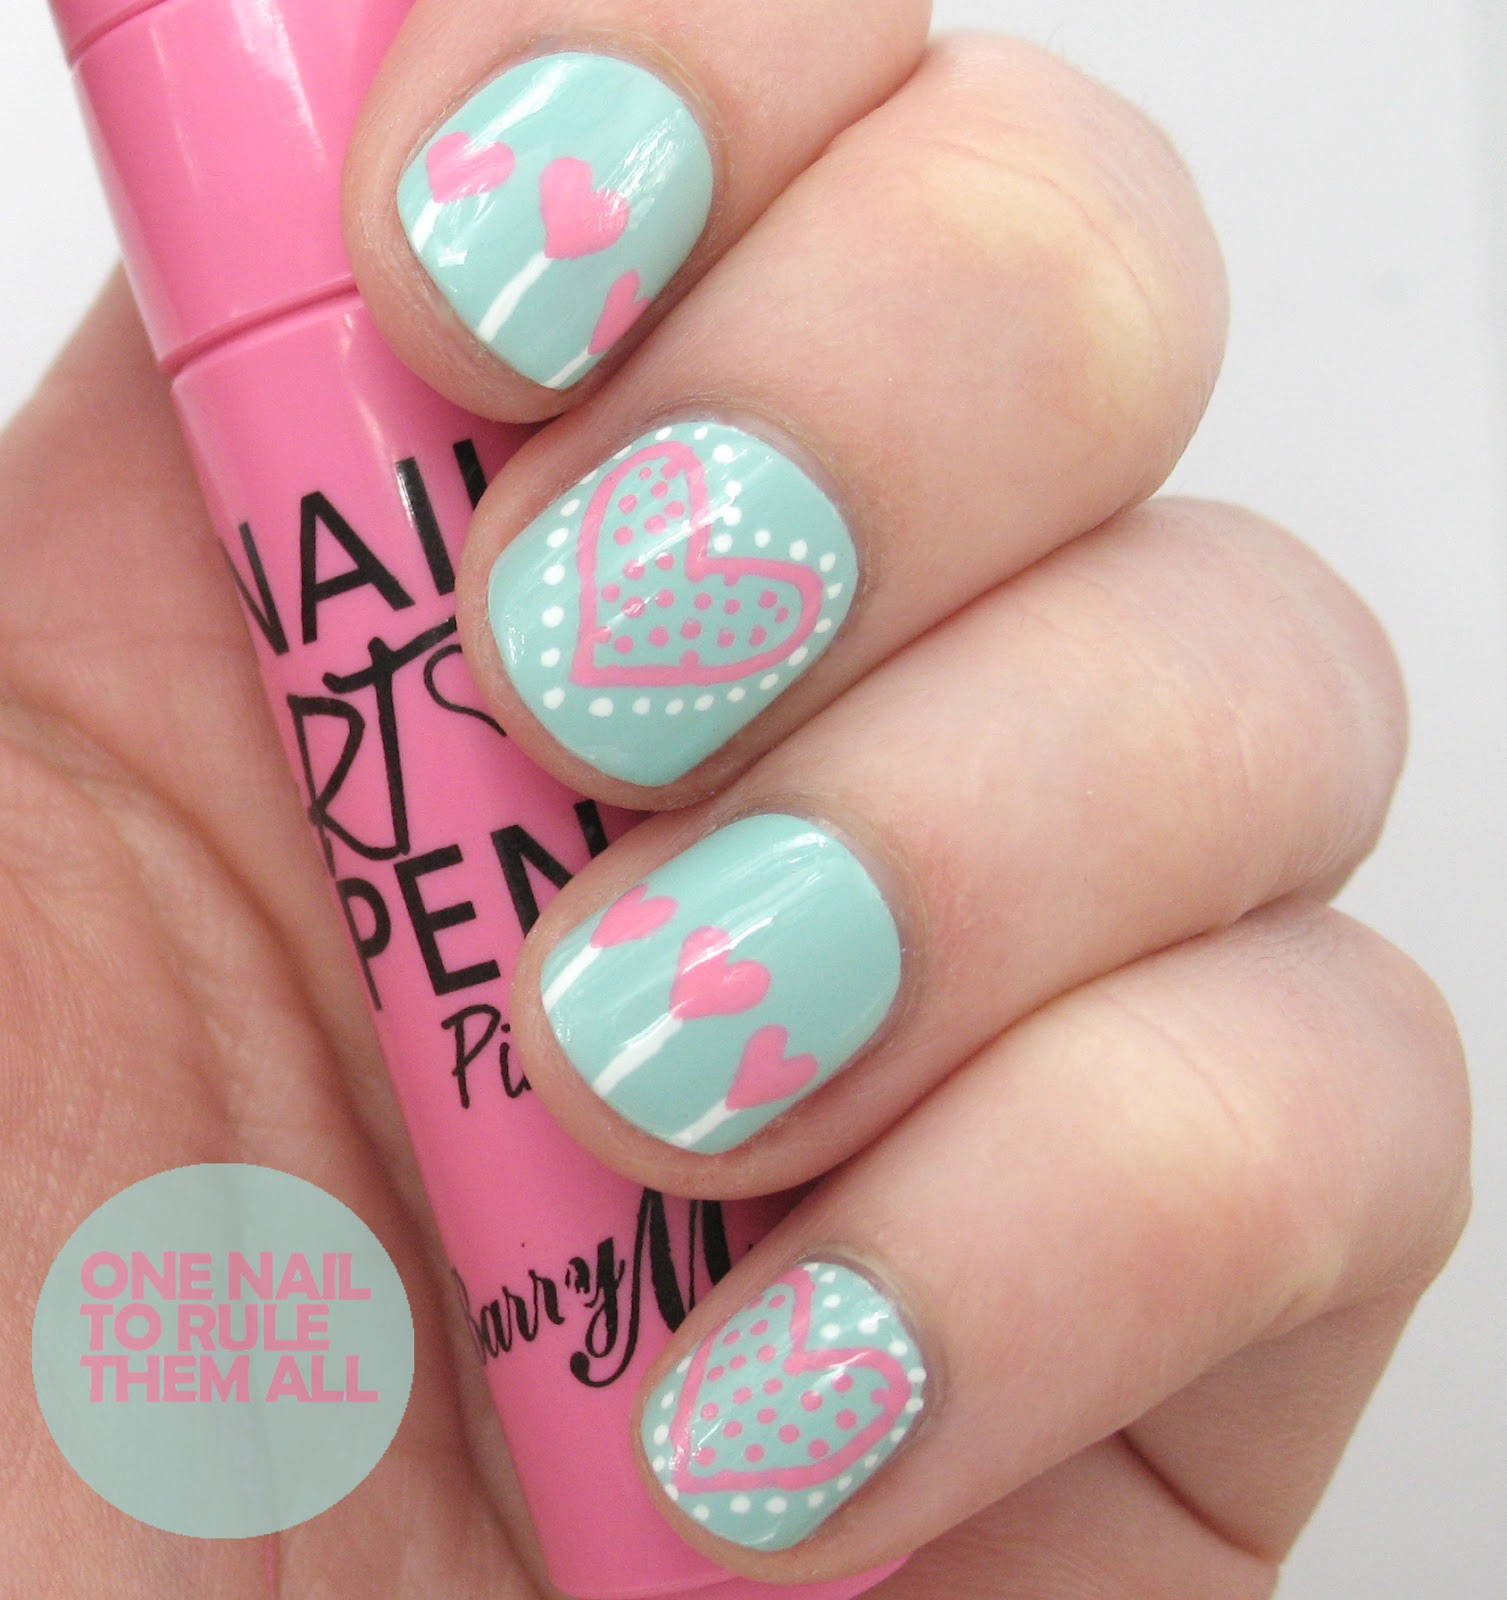 Adorable Nail Art: One Nail To Rule Them All: Barry M Nail Art Pens Review